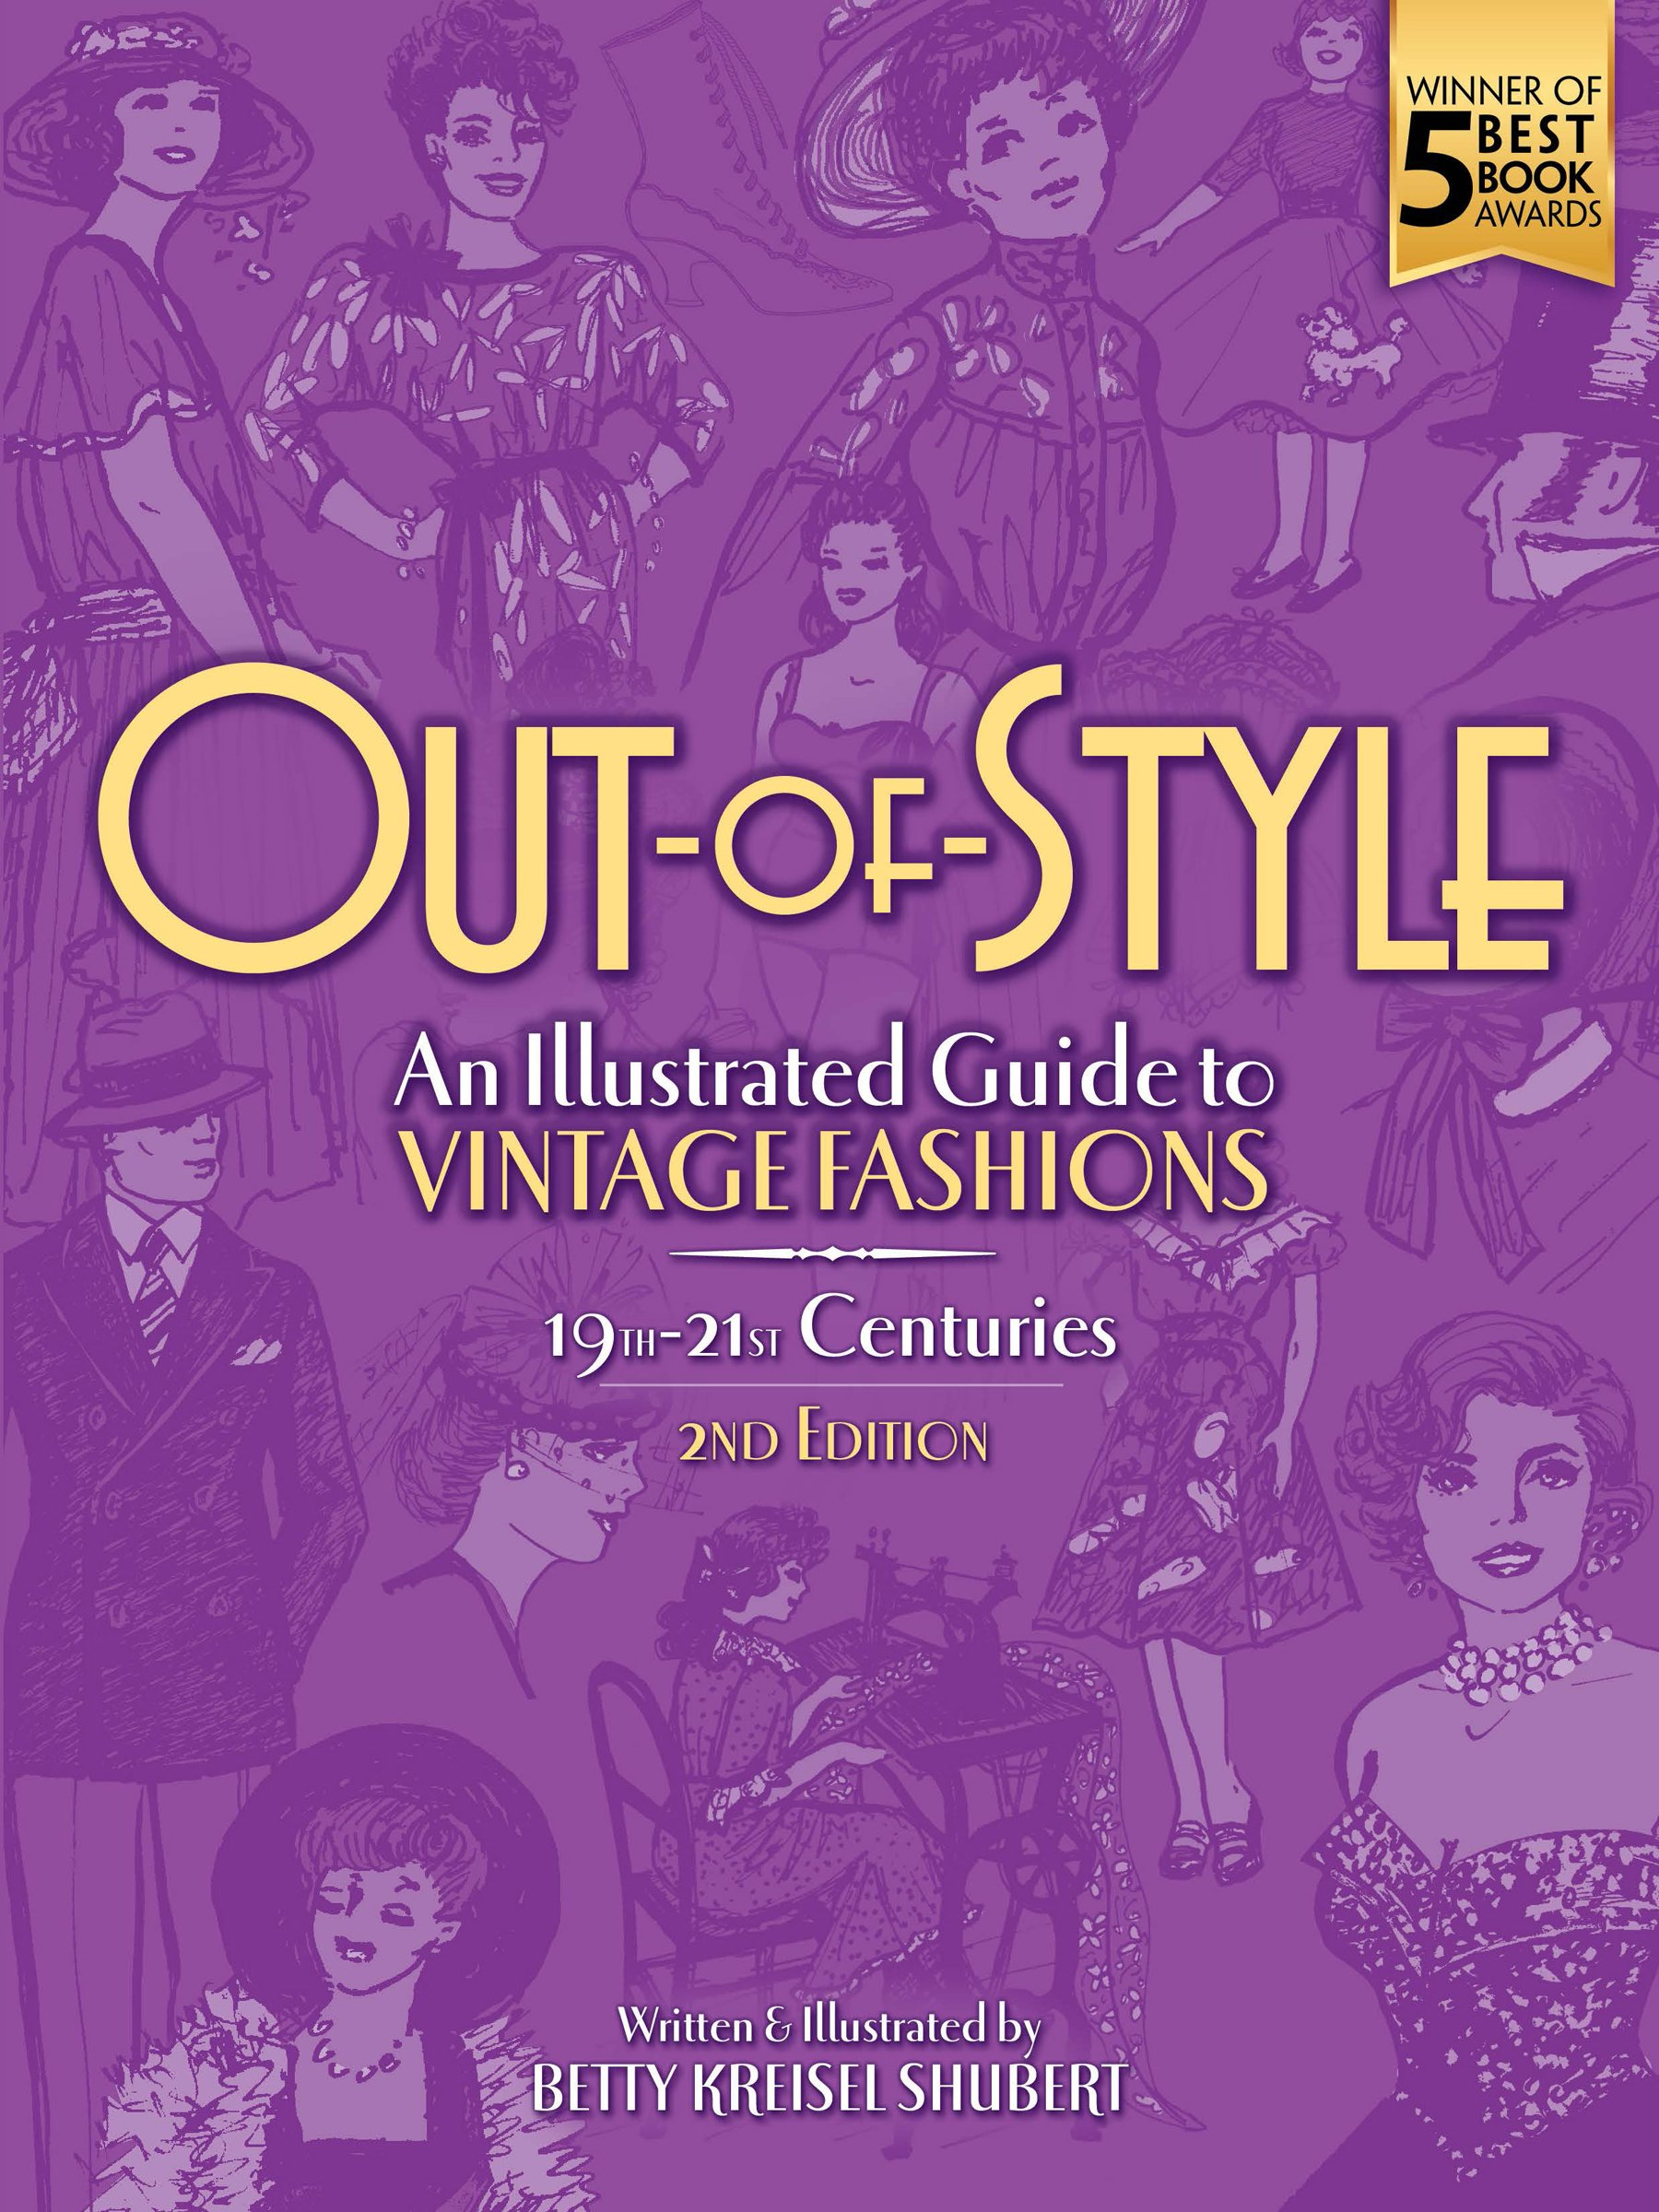 out-of-style-an-illustrated-guide-to-vintage-fashions